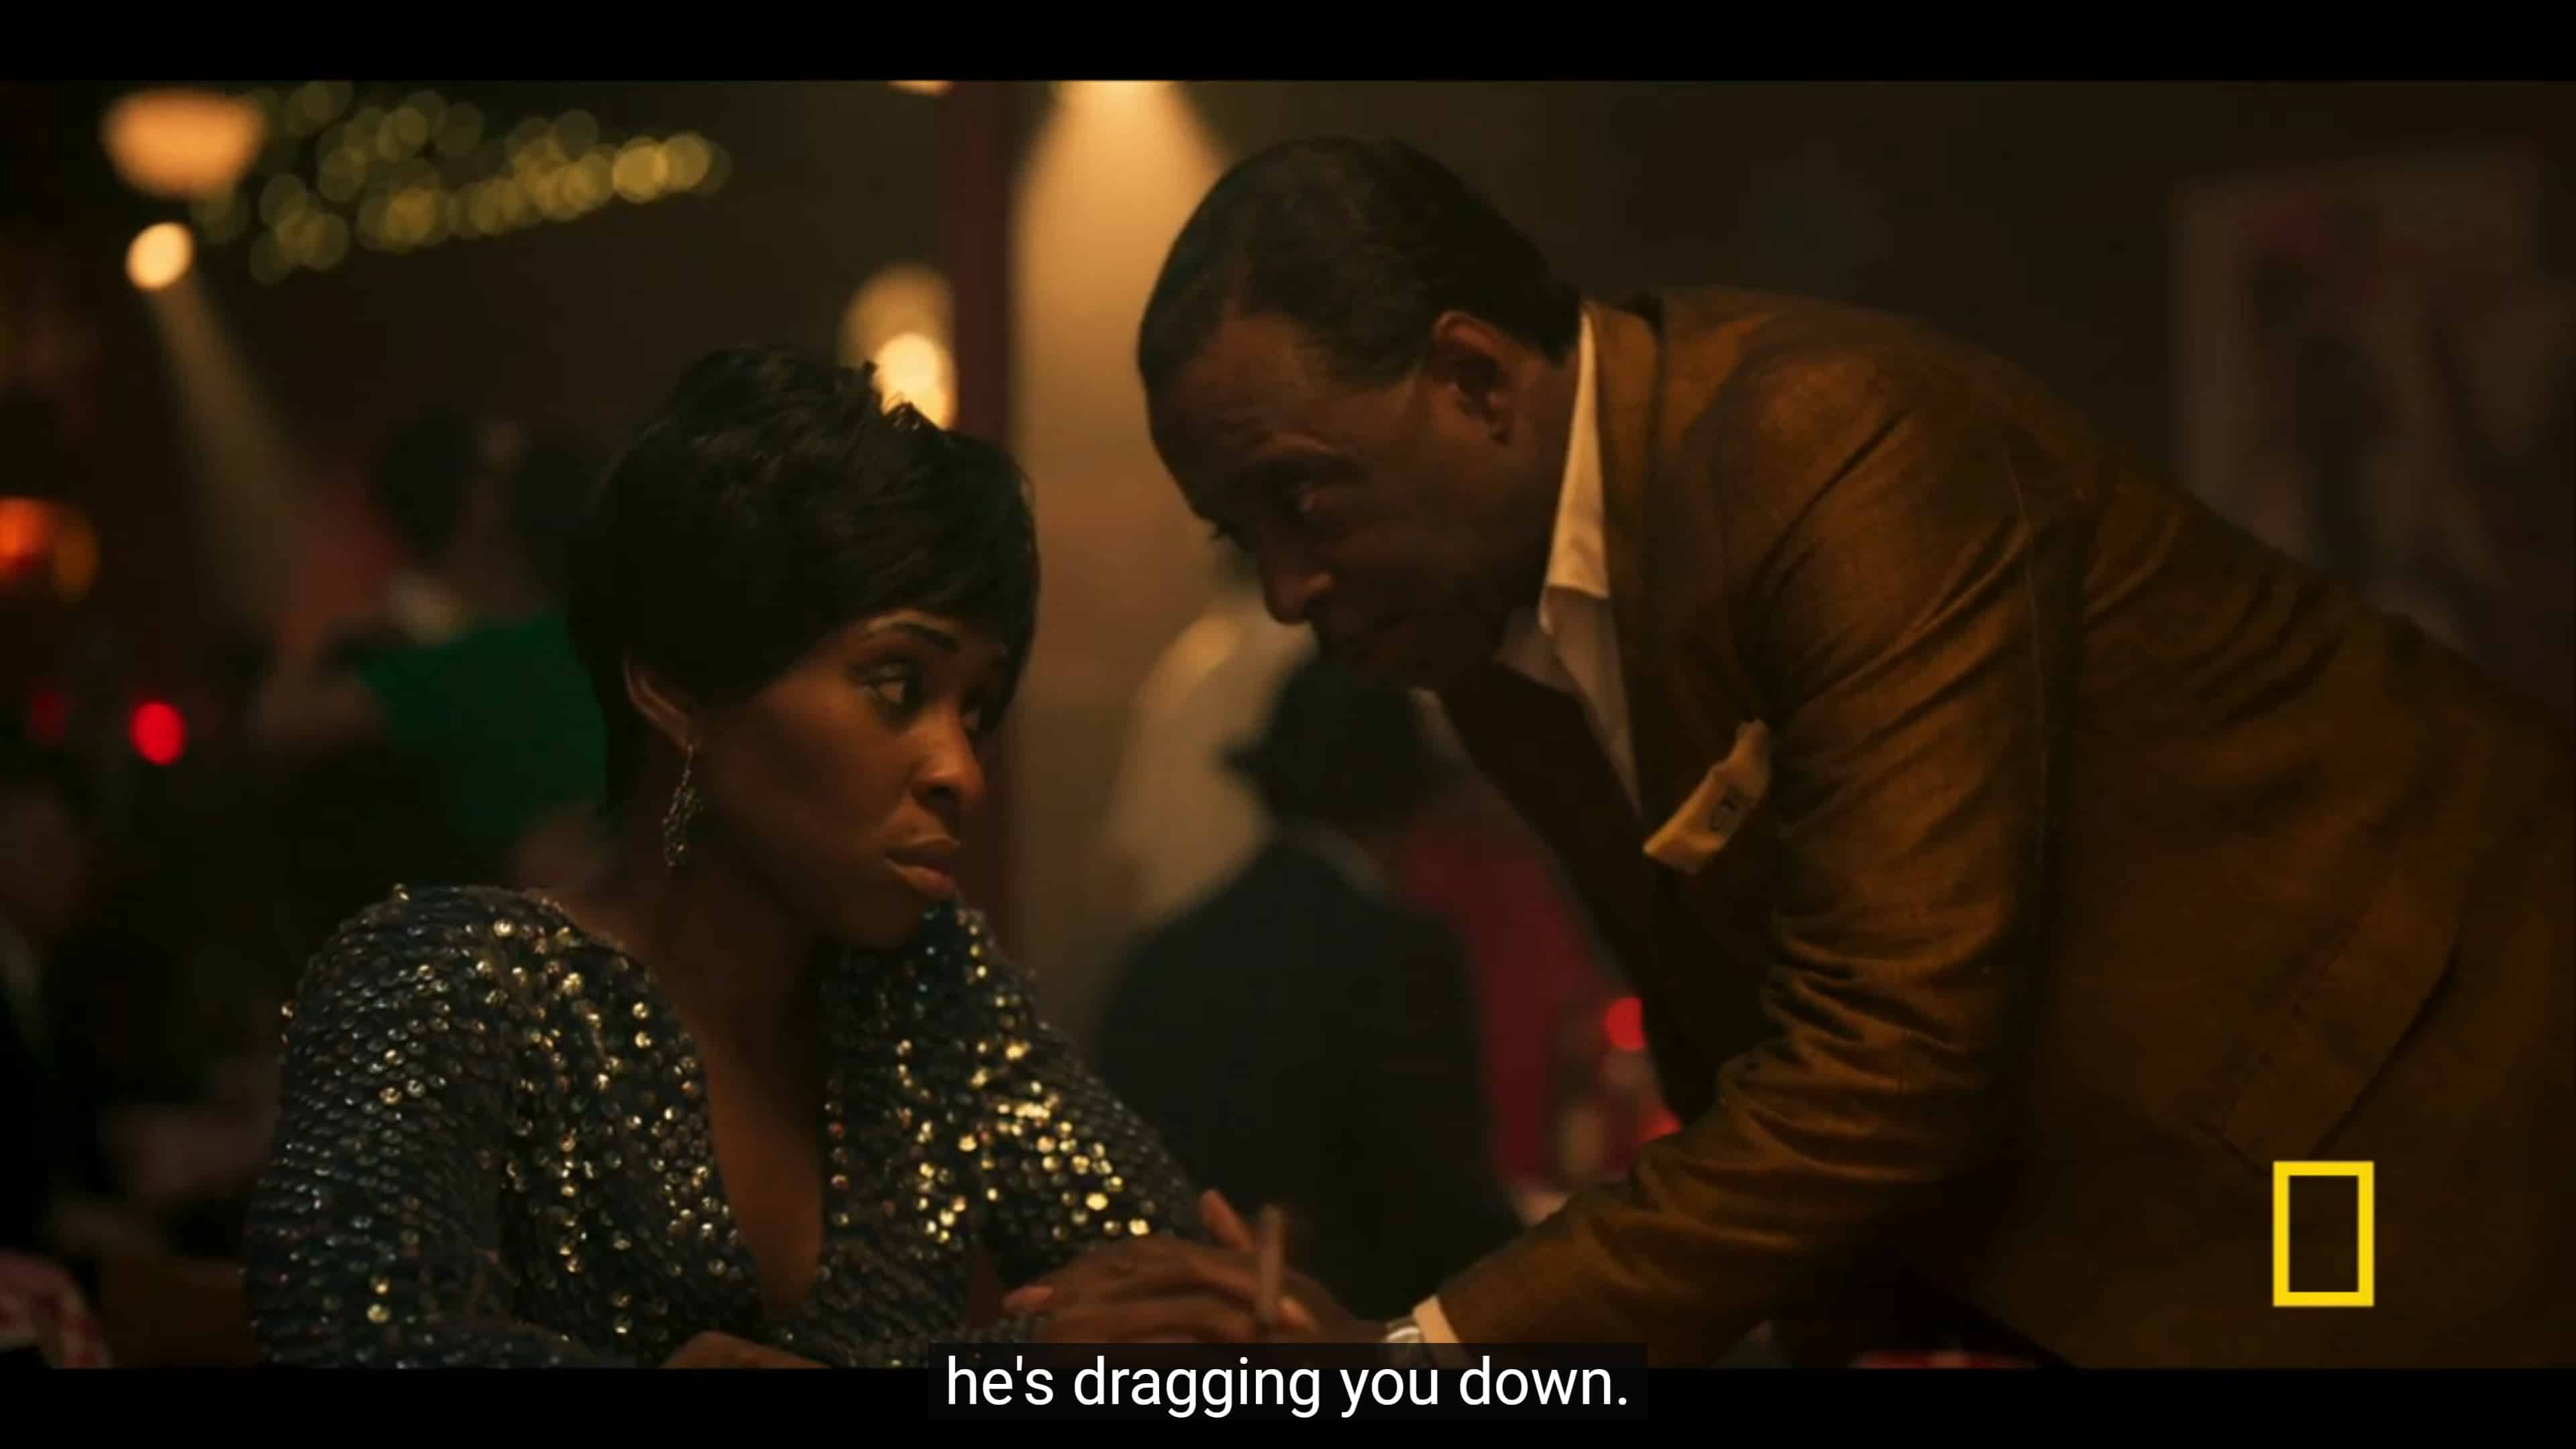 C.L. telling Aretha that her husband is dragging her down